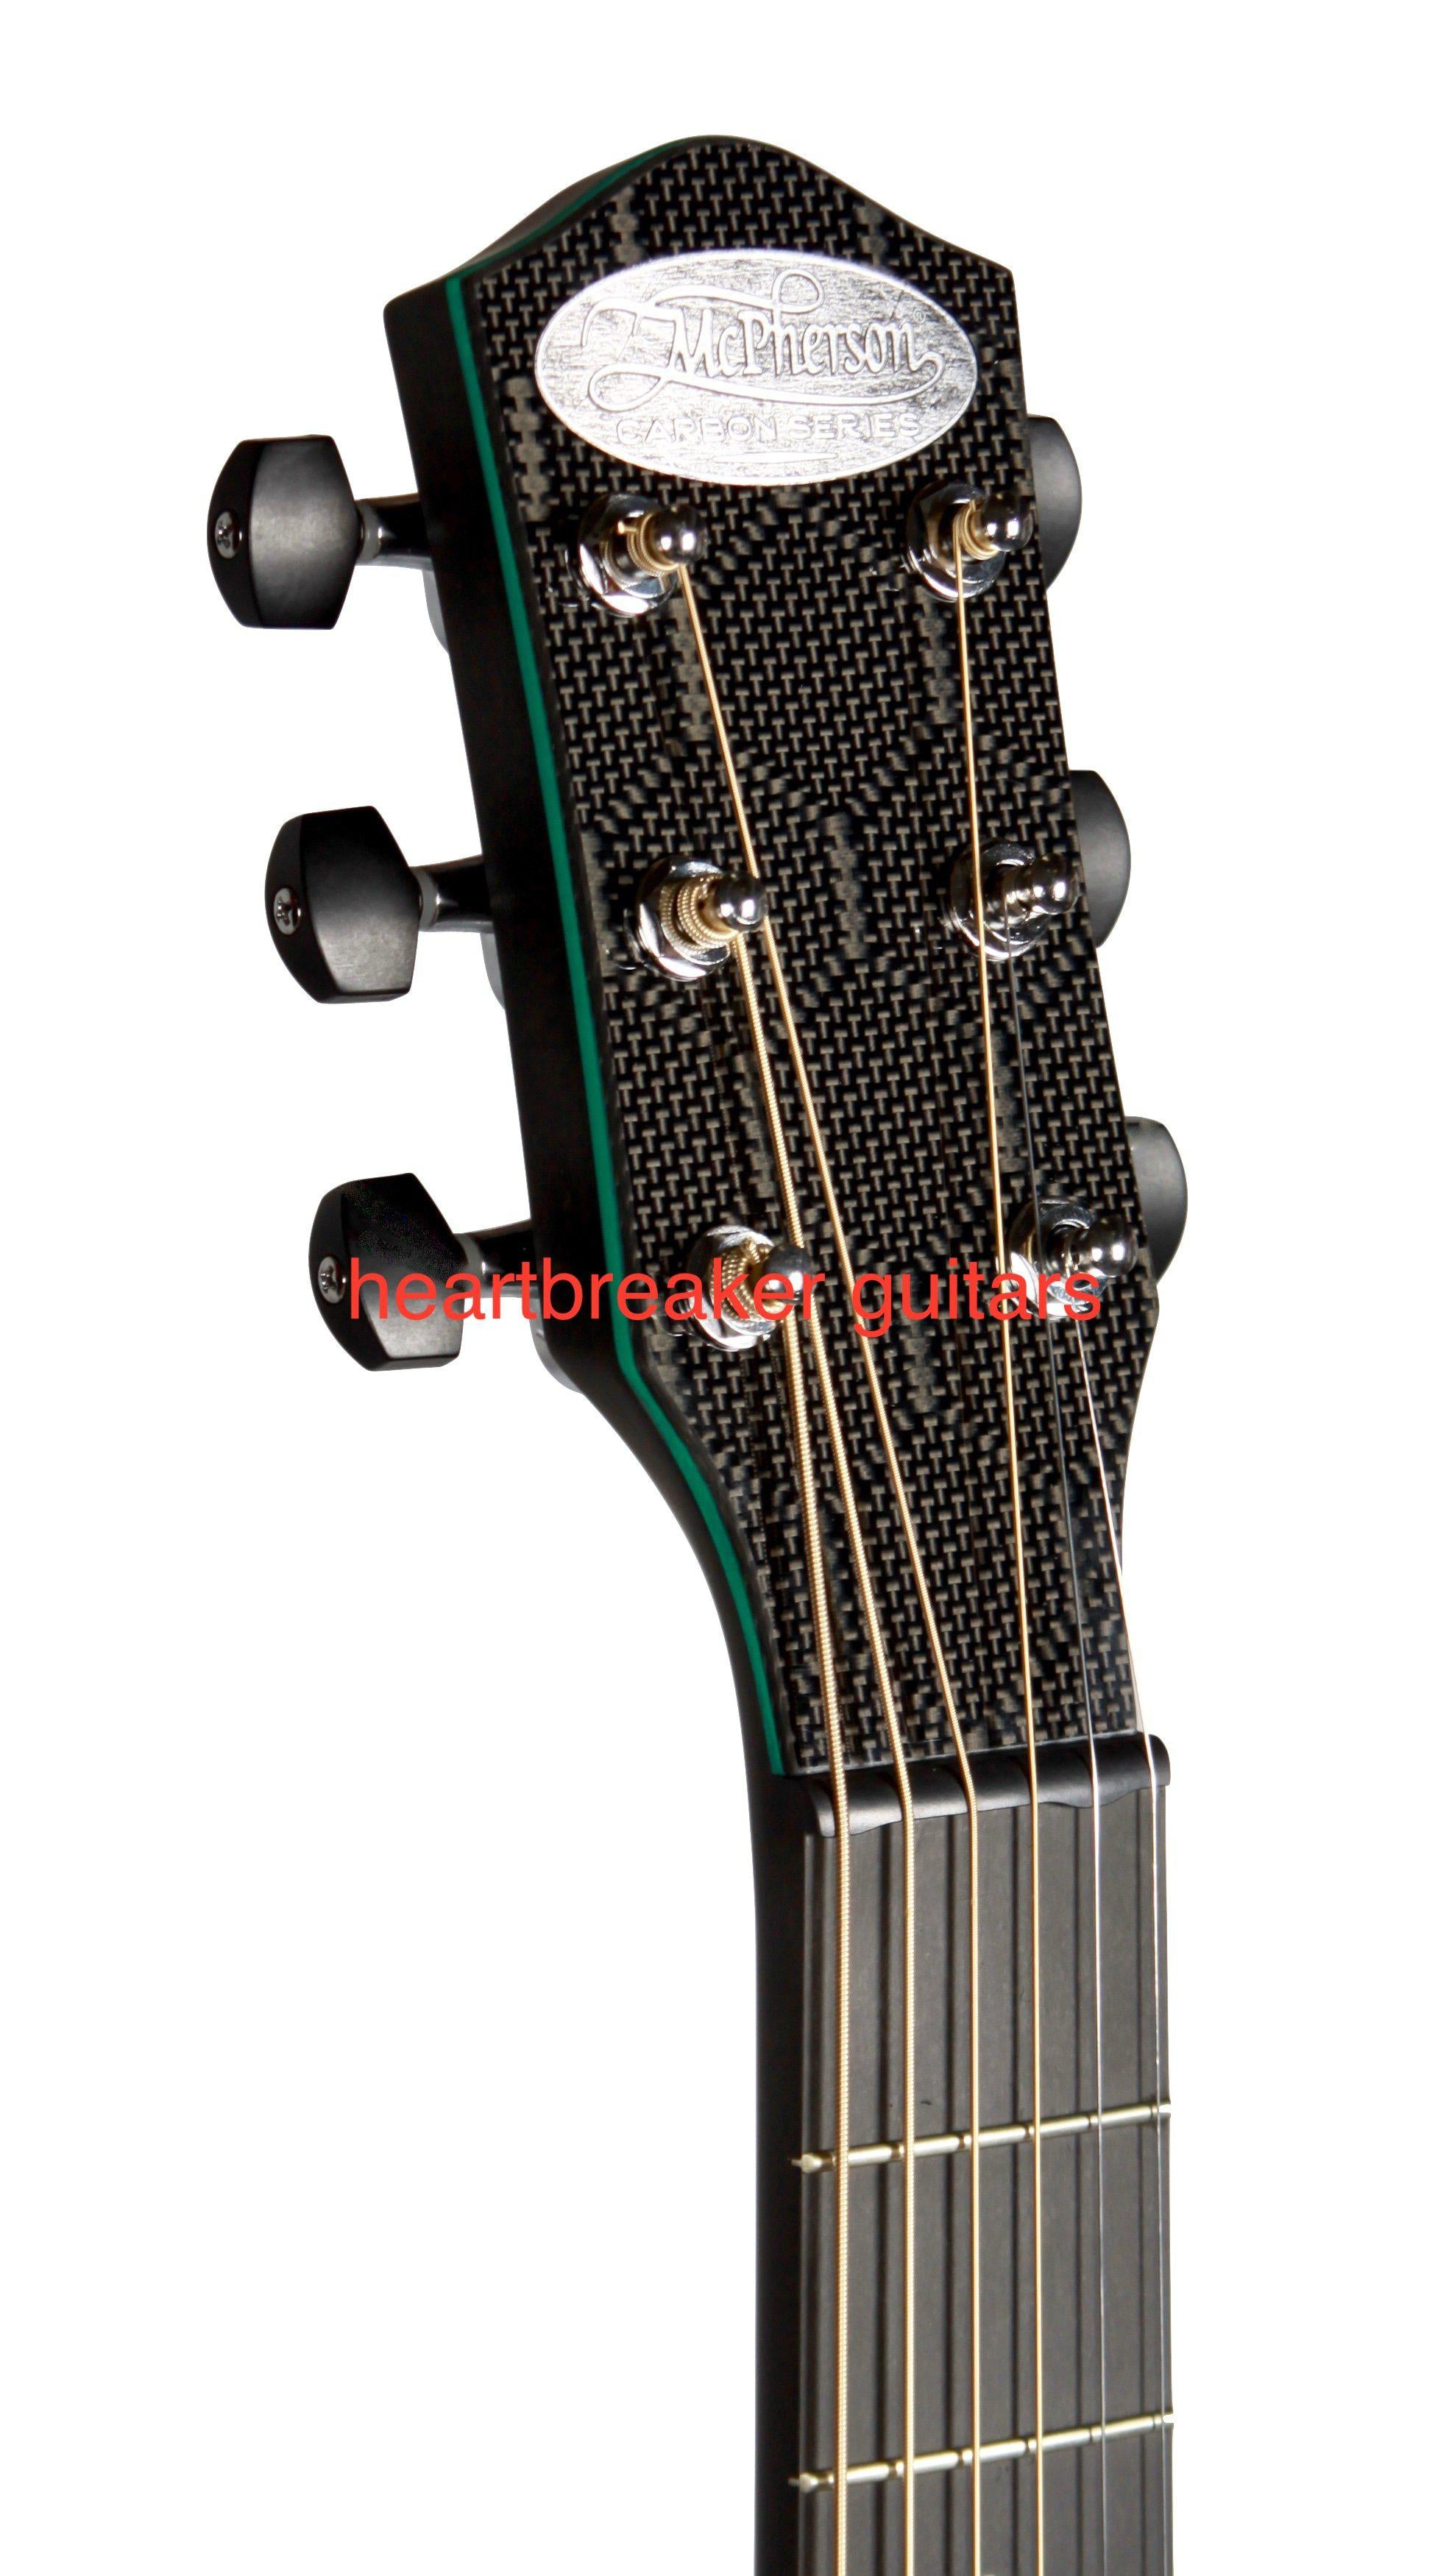 McPherson Touring Green - McPherson Guitars - Heartbreaker Guitars